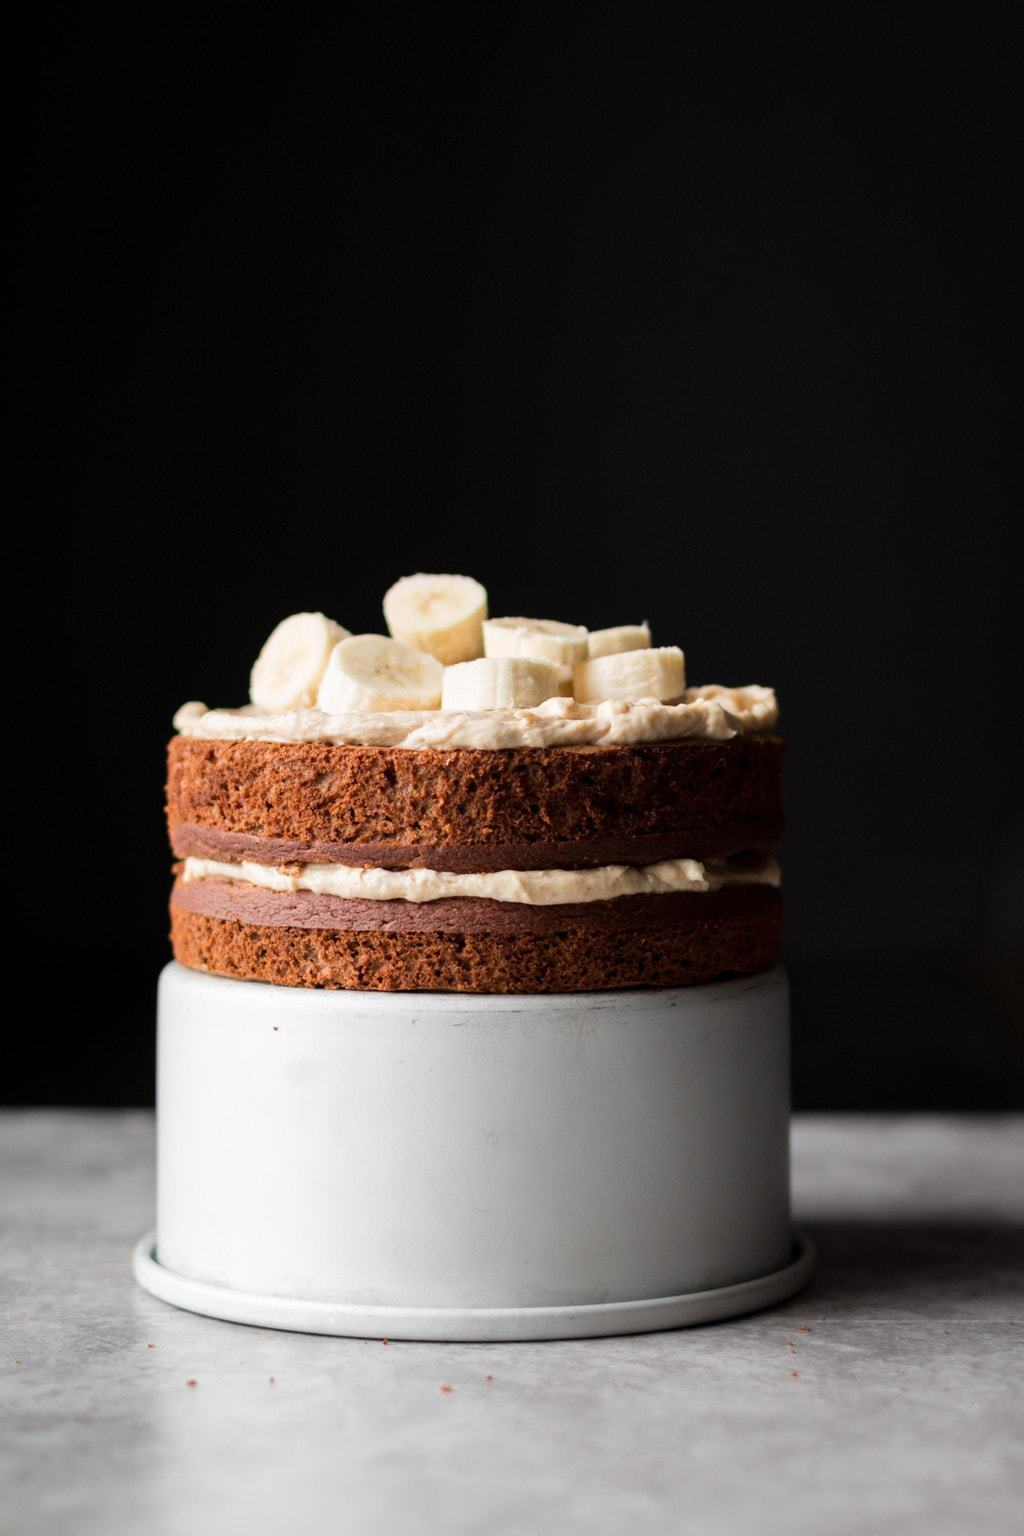 Spiced Banana Cake with Cream Cheese Frosting